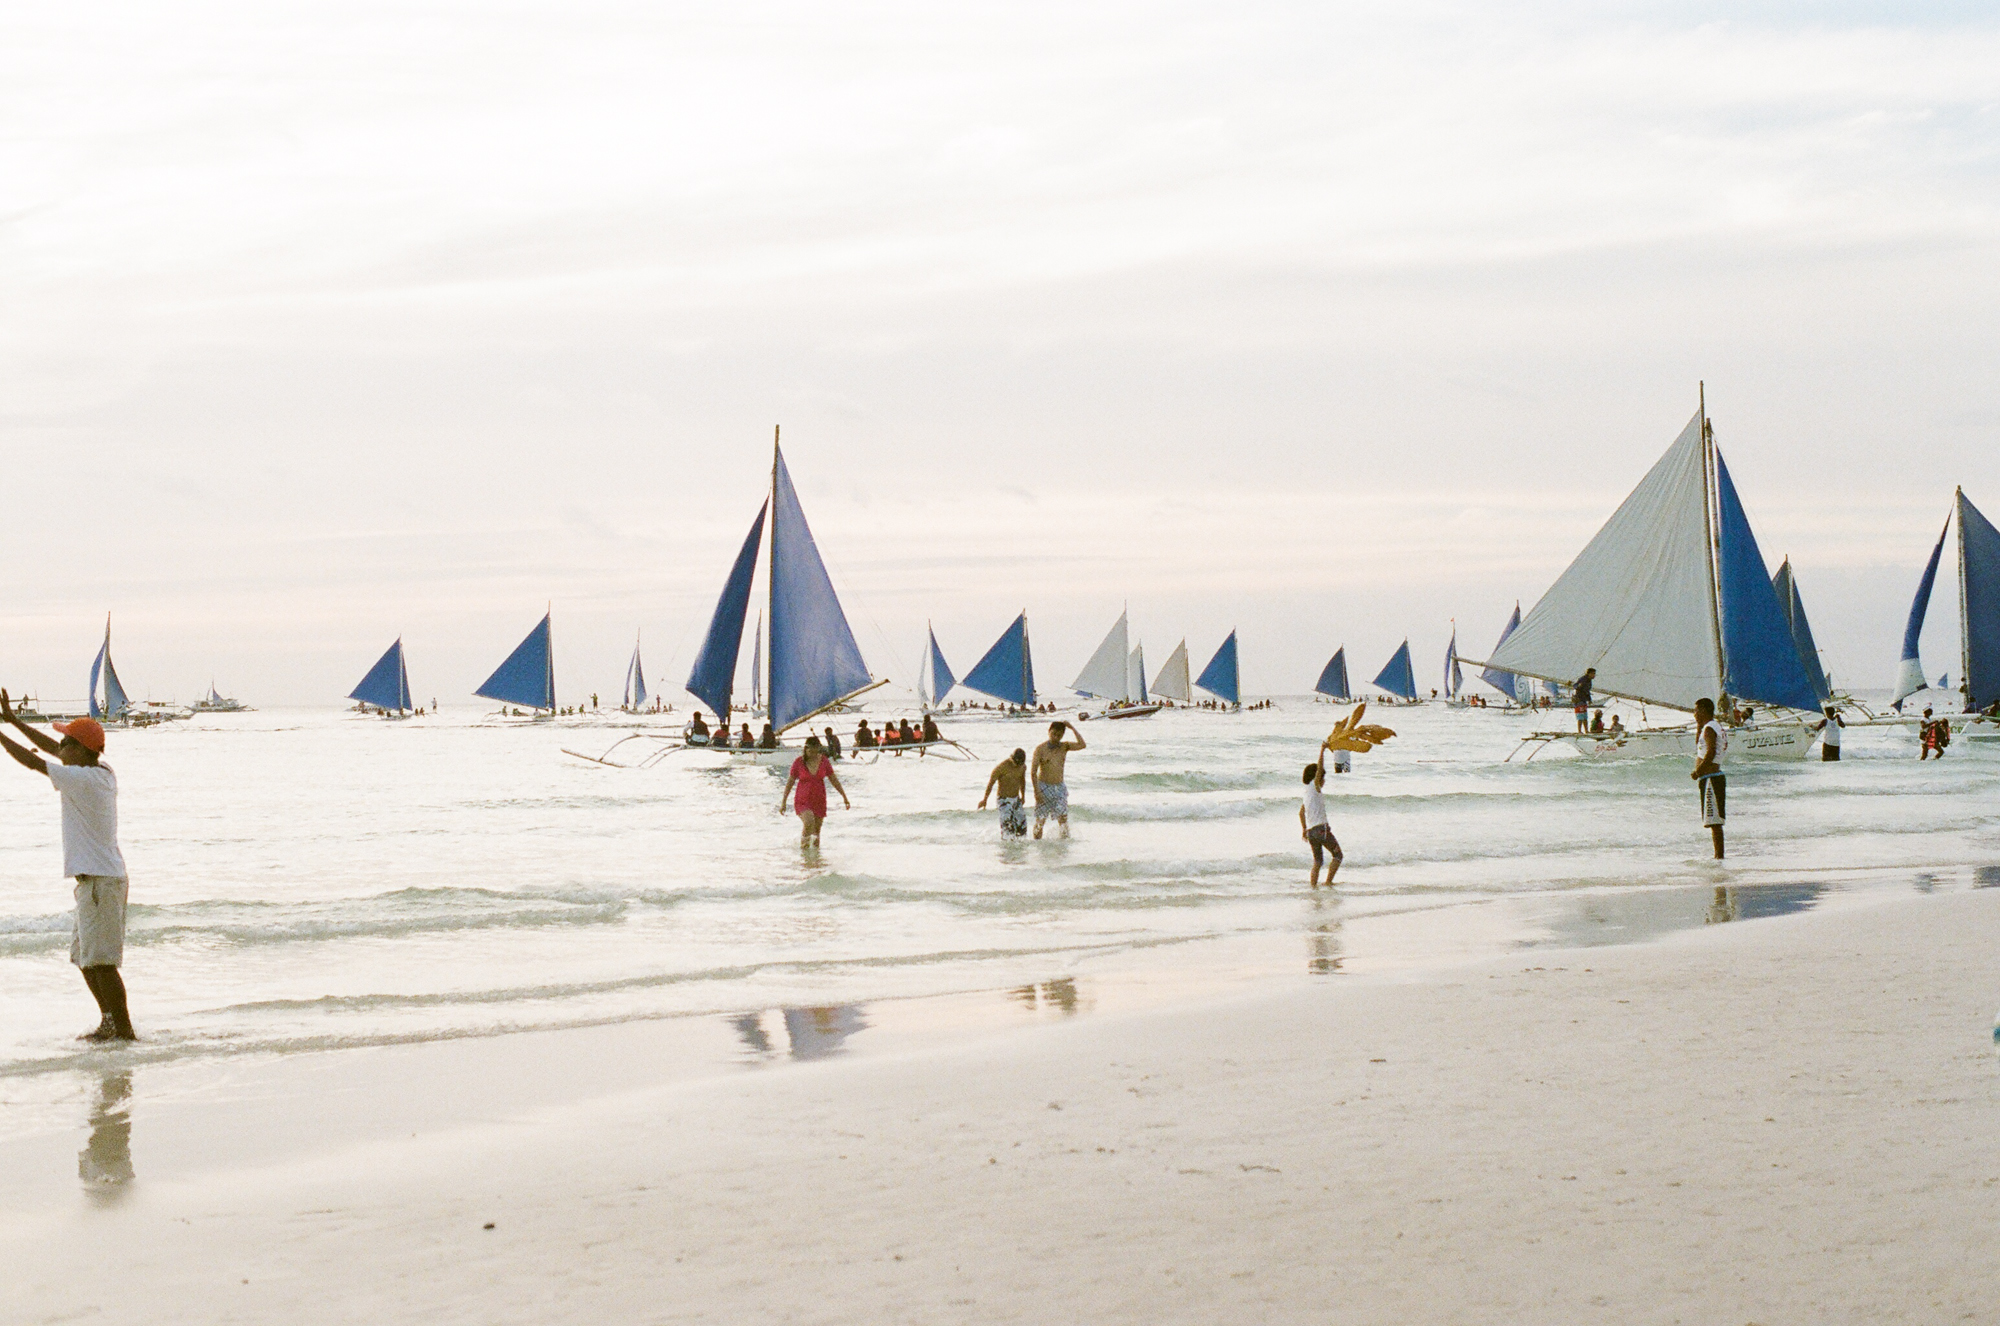 boracay philippines beach travel washington dc photographer film sailboats